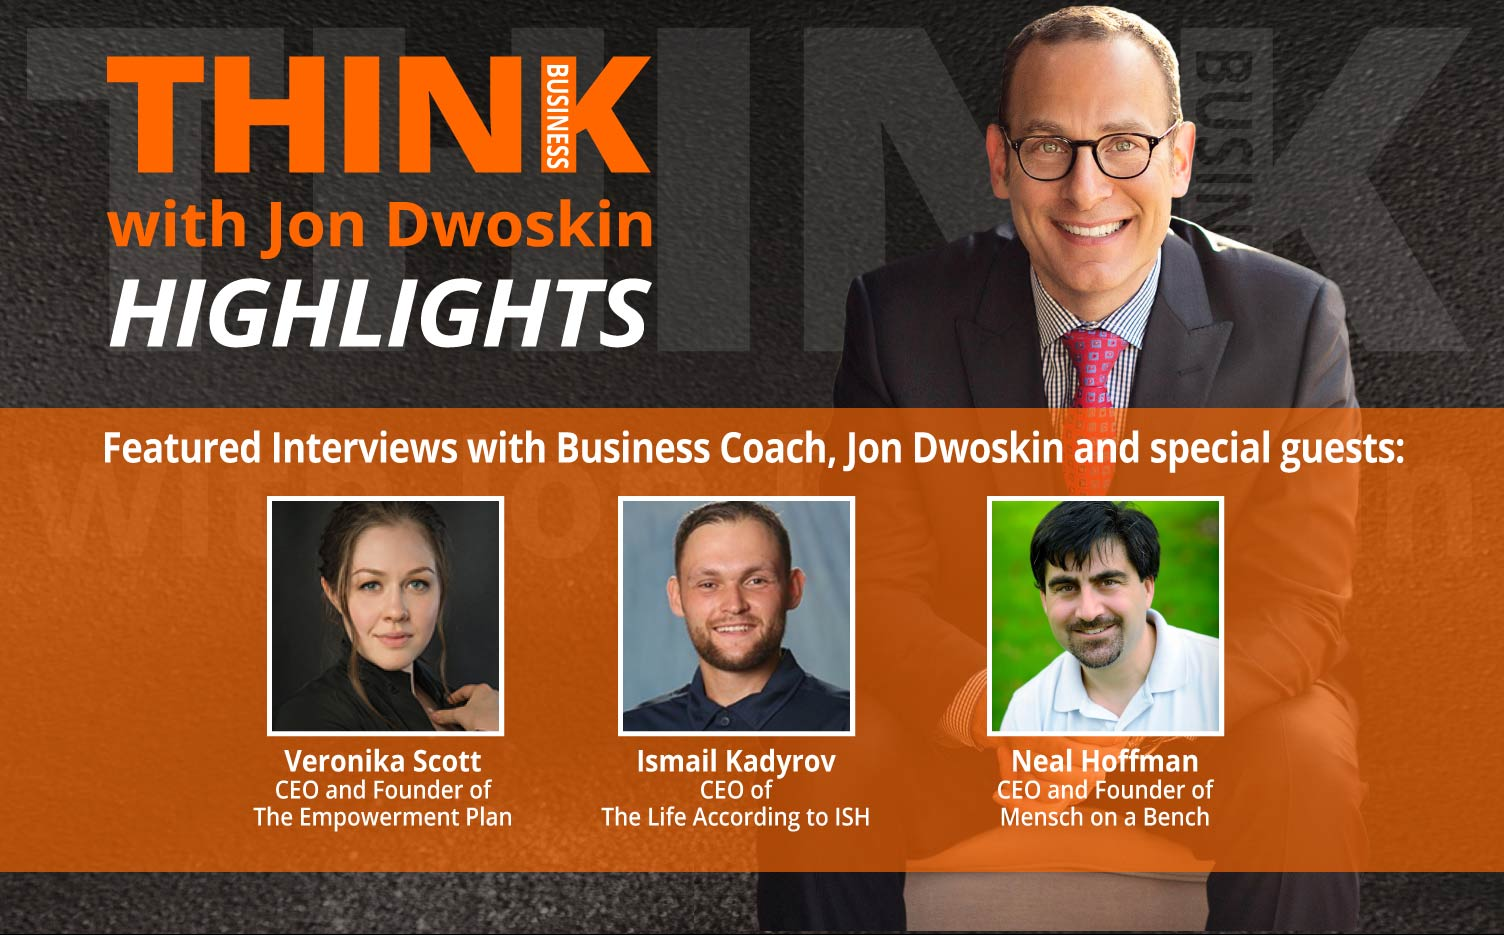 THINK Business: HIGHLIGHTS – Jon Dwoskin Featured Interviews with Veronika Scott, Ismail Kadyrov, Neal Hoffman